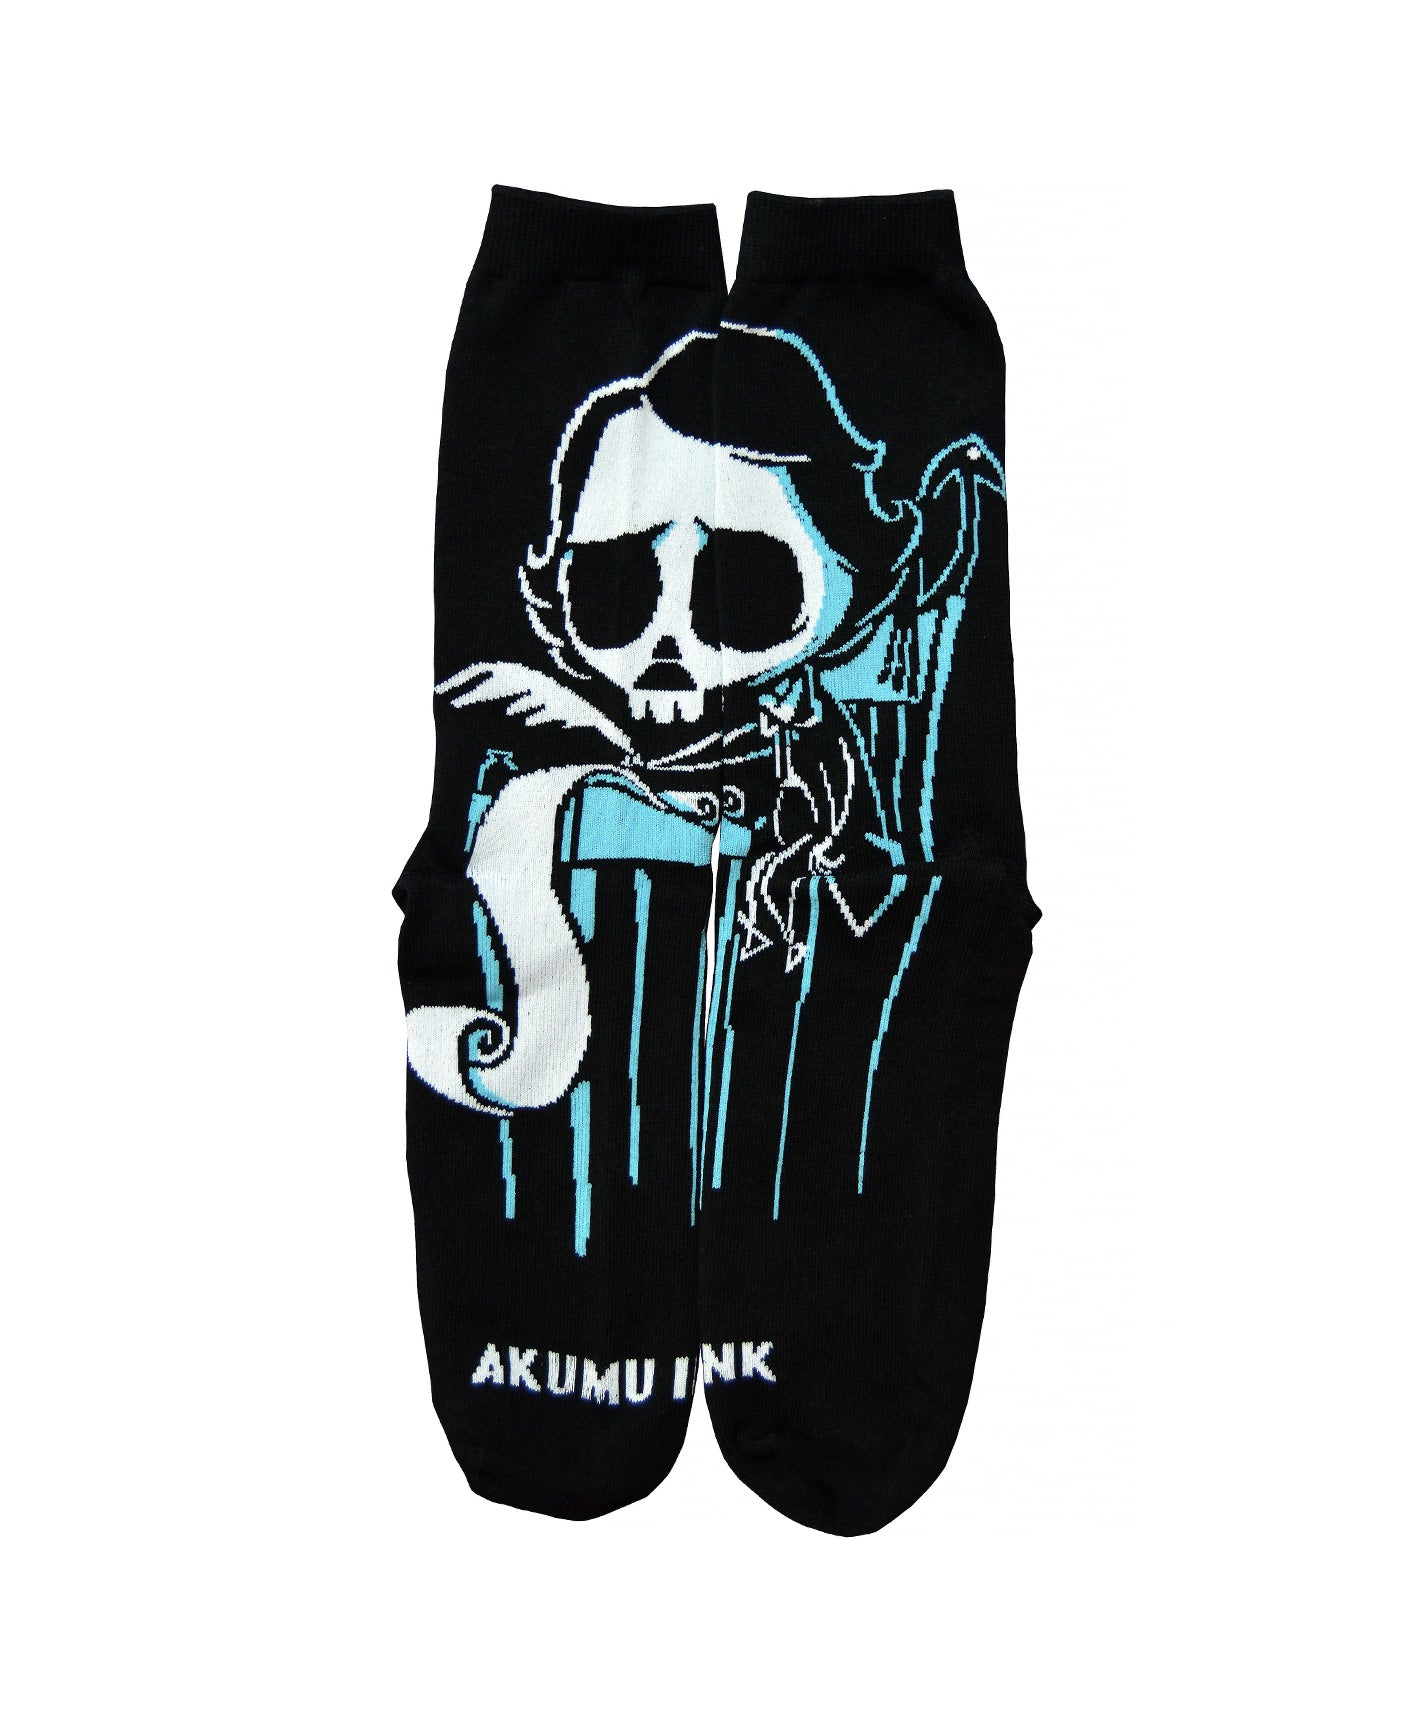 Akumu Ink Lonely Writer Unisex Socks